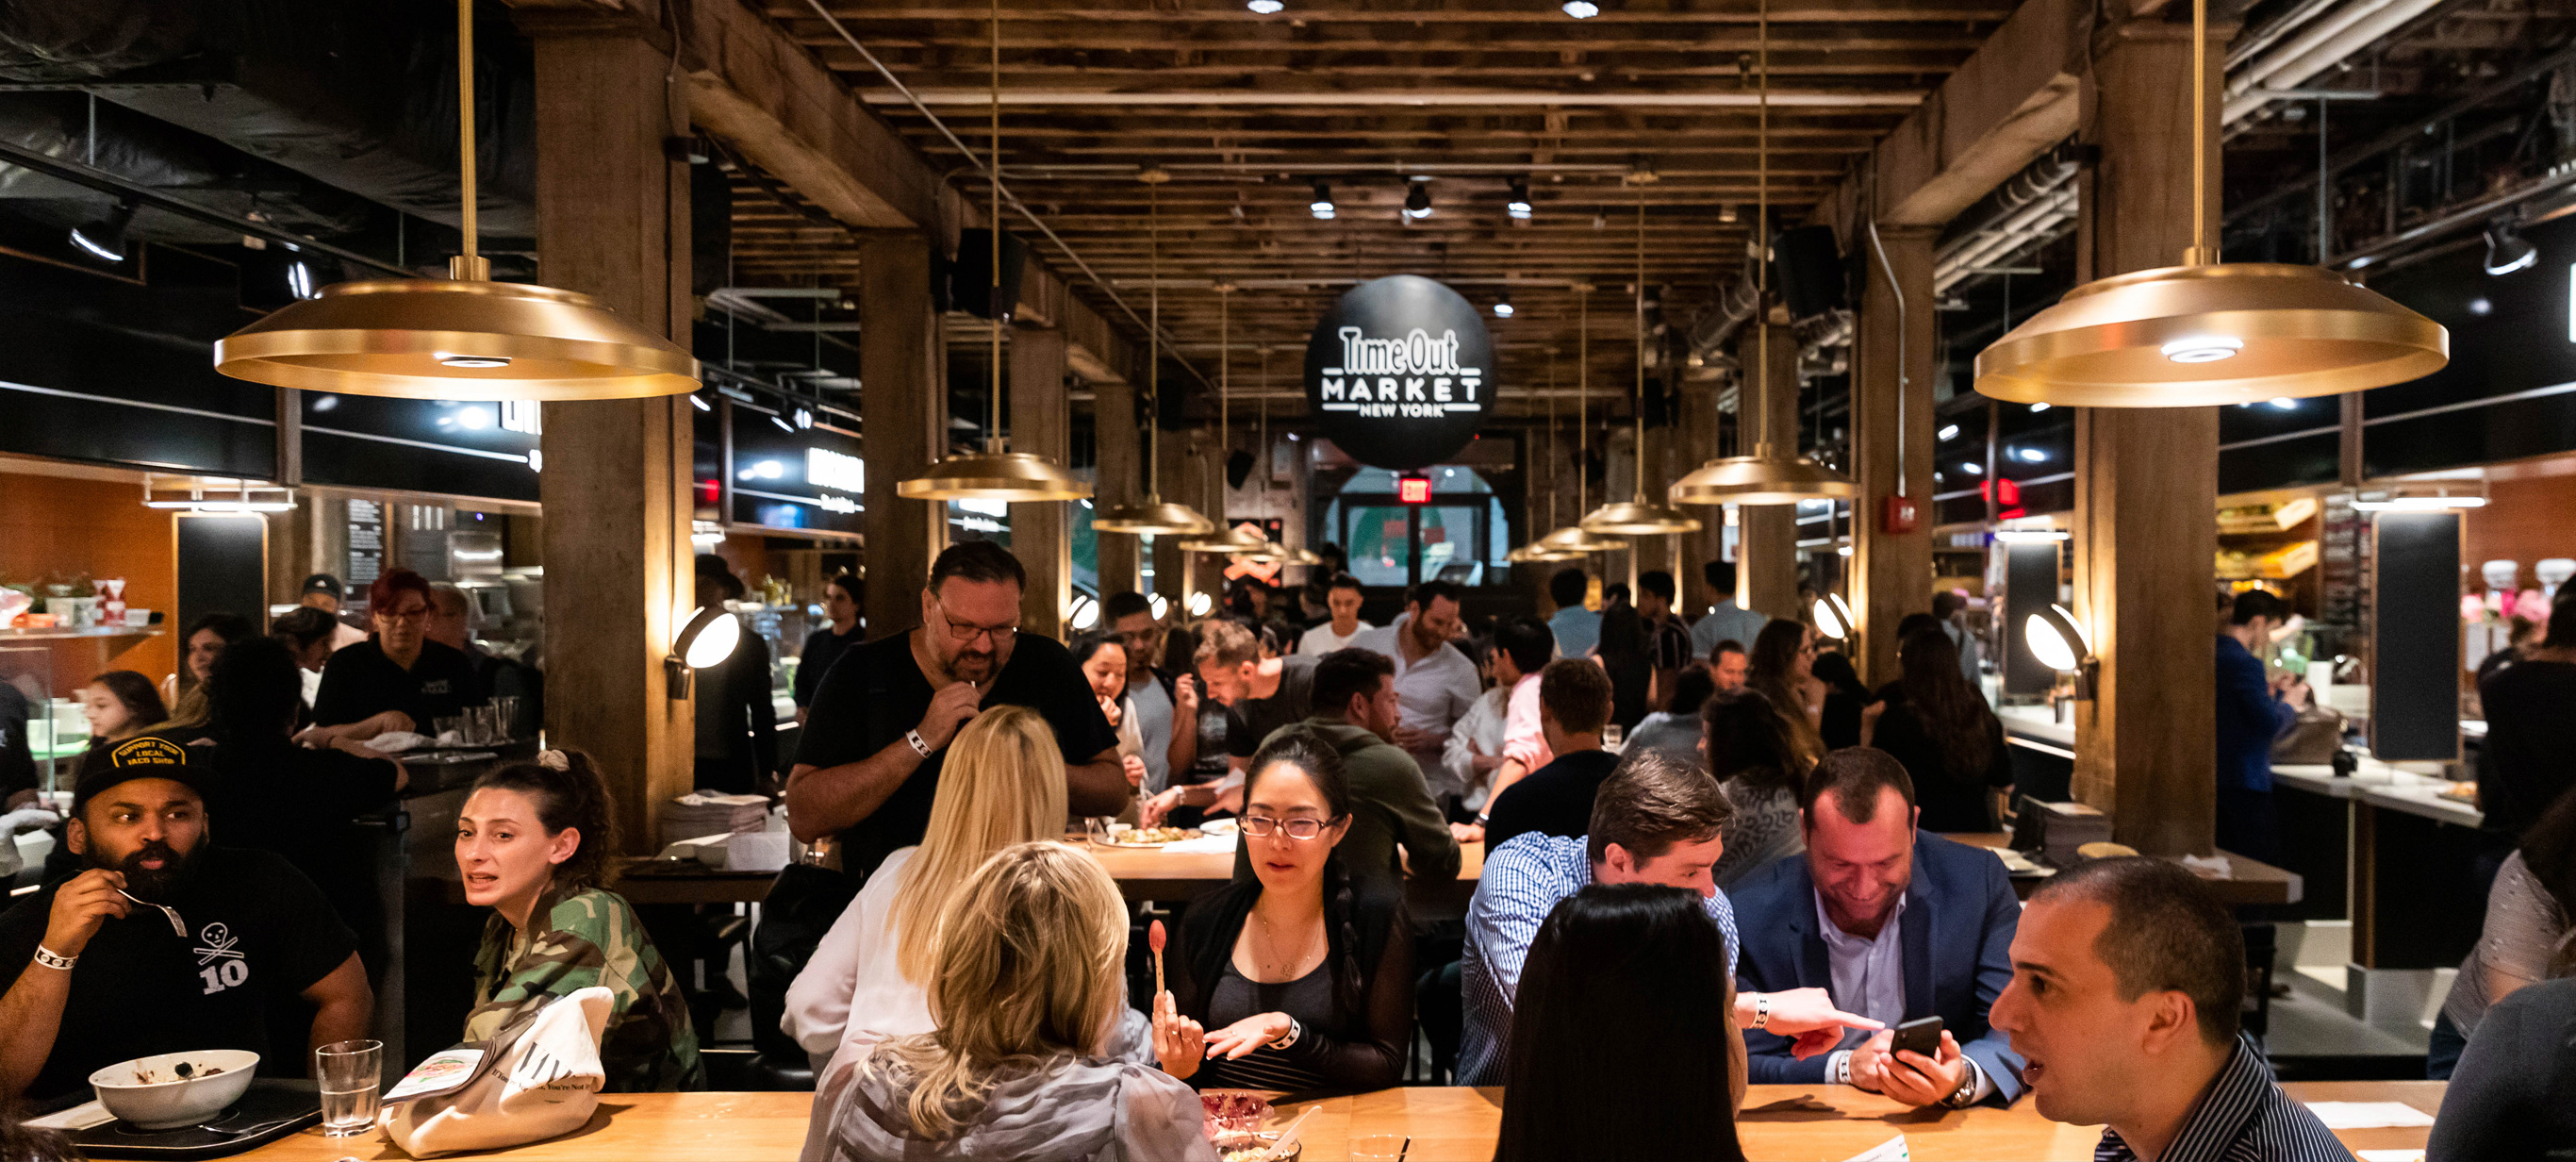 Busy scene of Time Out Market New York with diners at communal tables